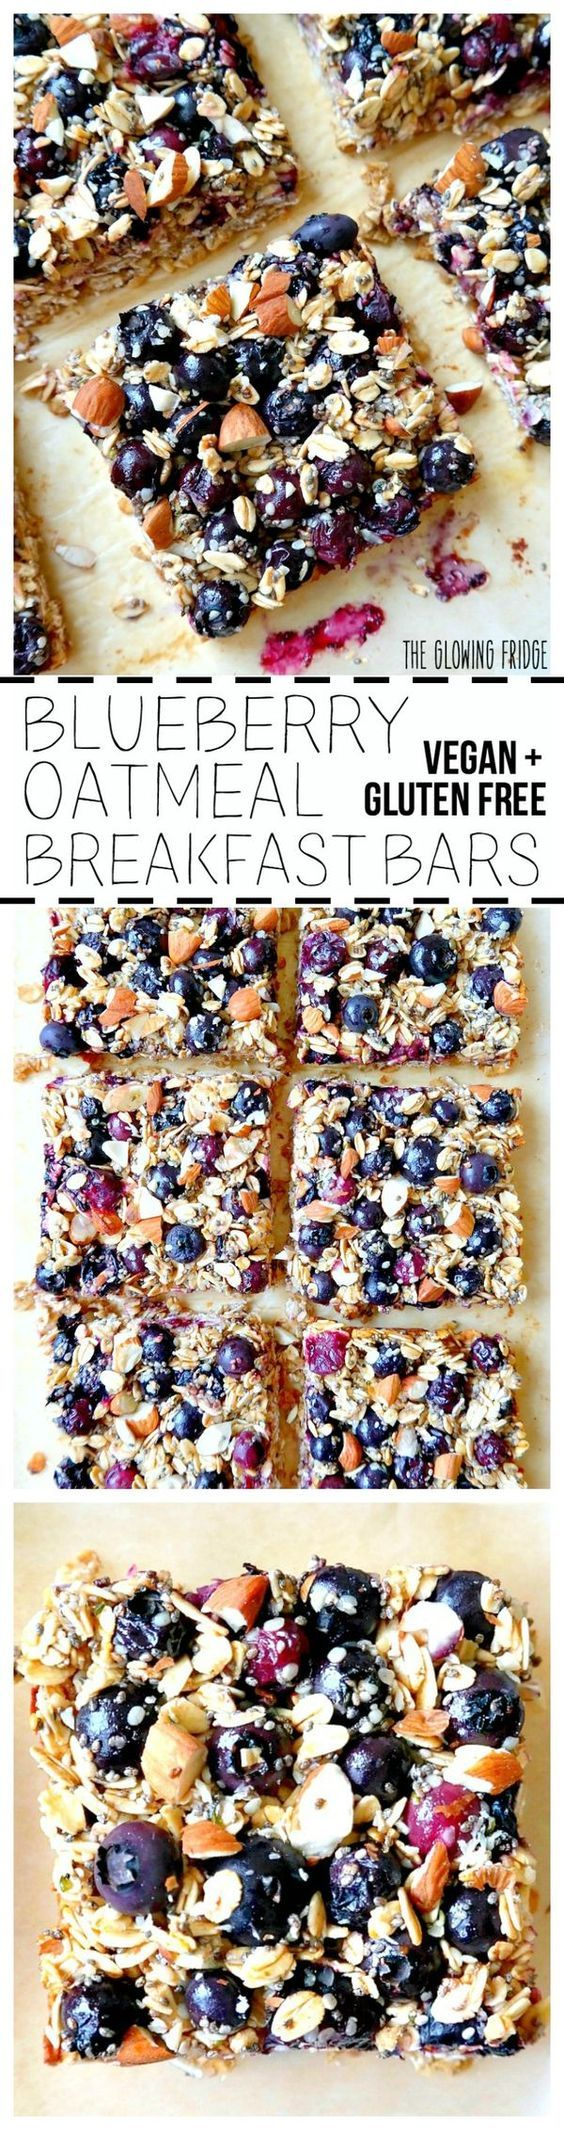 VEGAN and GF. 'Blueberry Oatmeal Breakfast Bars' that are wholesome super clean nutritionally balanced naturally sweetened and have the added superfood goodness of chia seeds and hemp seeds. Eat one square alongside a smoothie for breakfast or as a yummy post-workout snack.